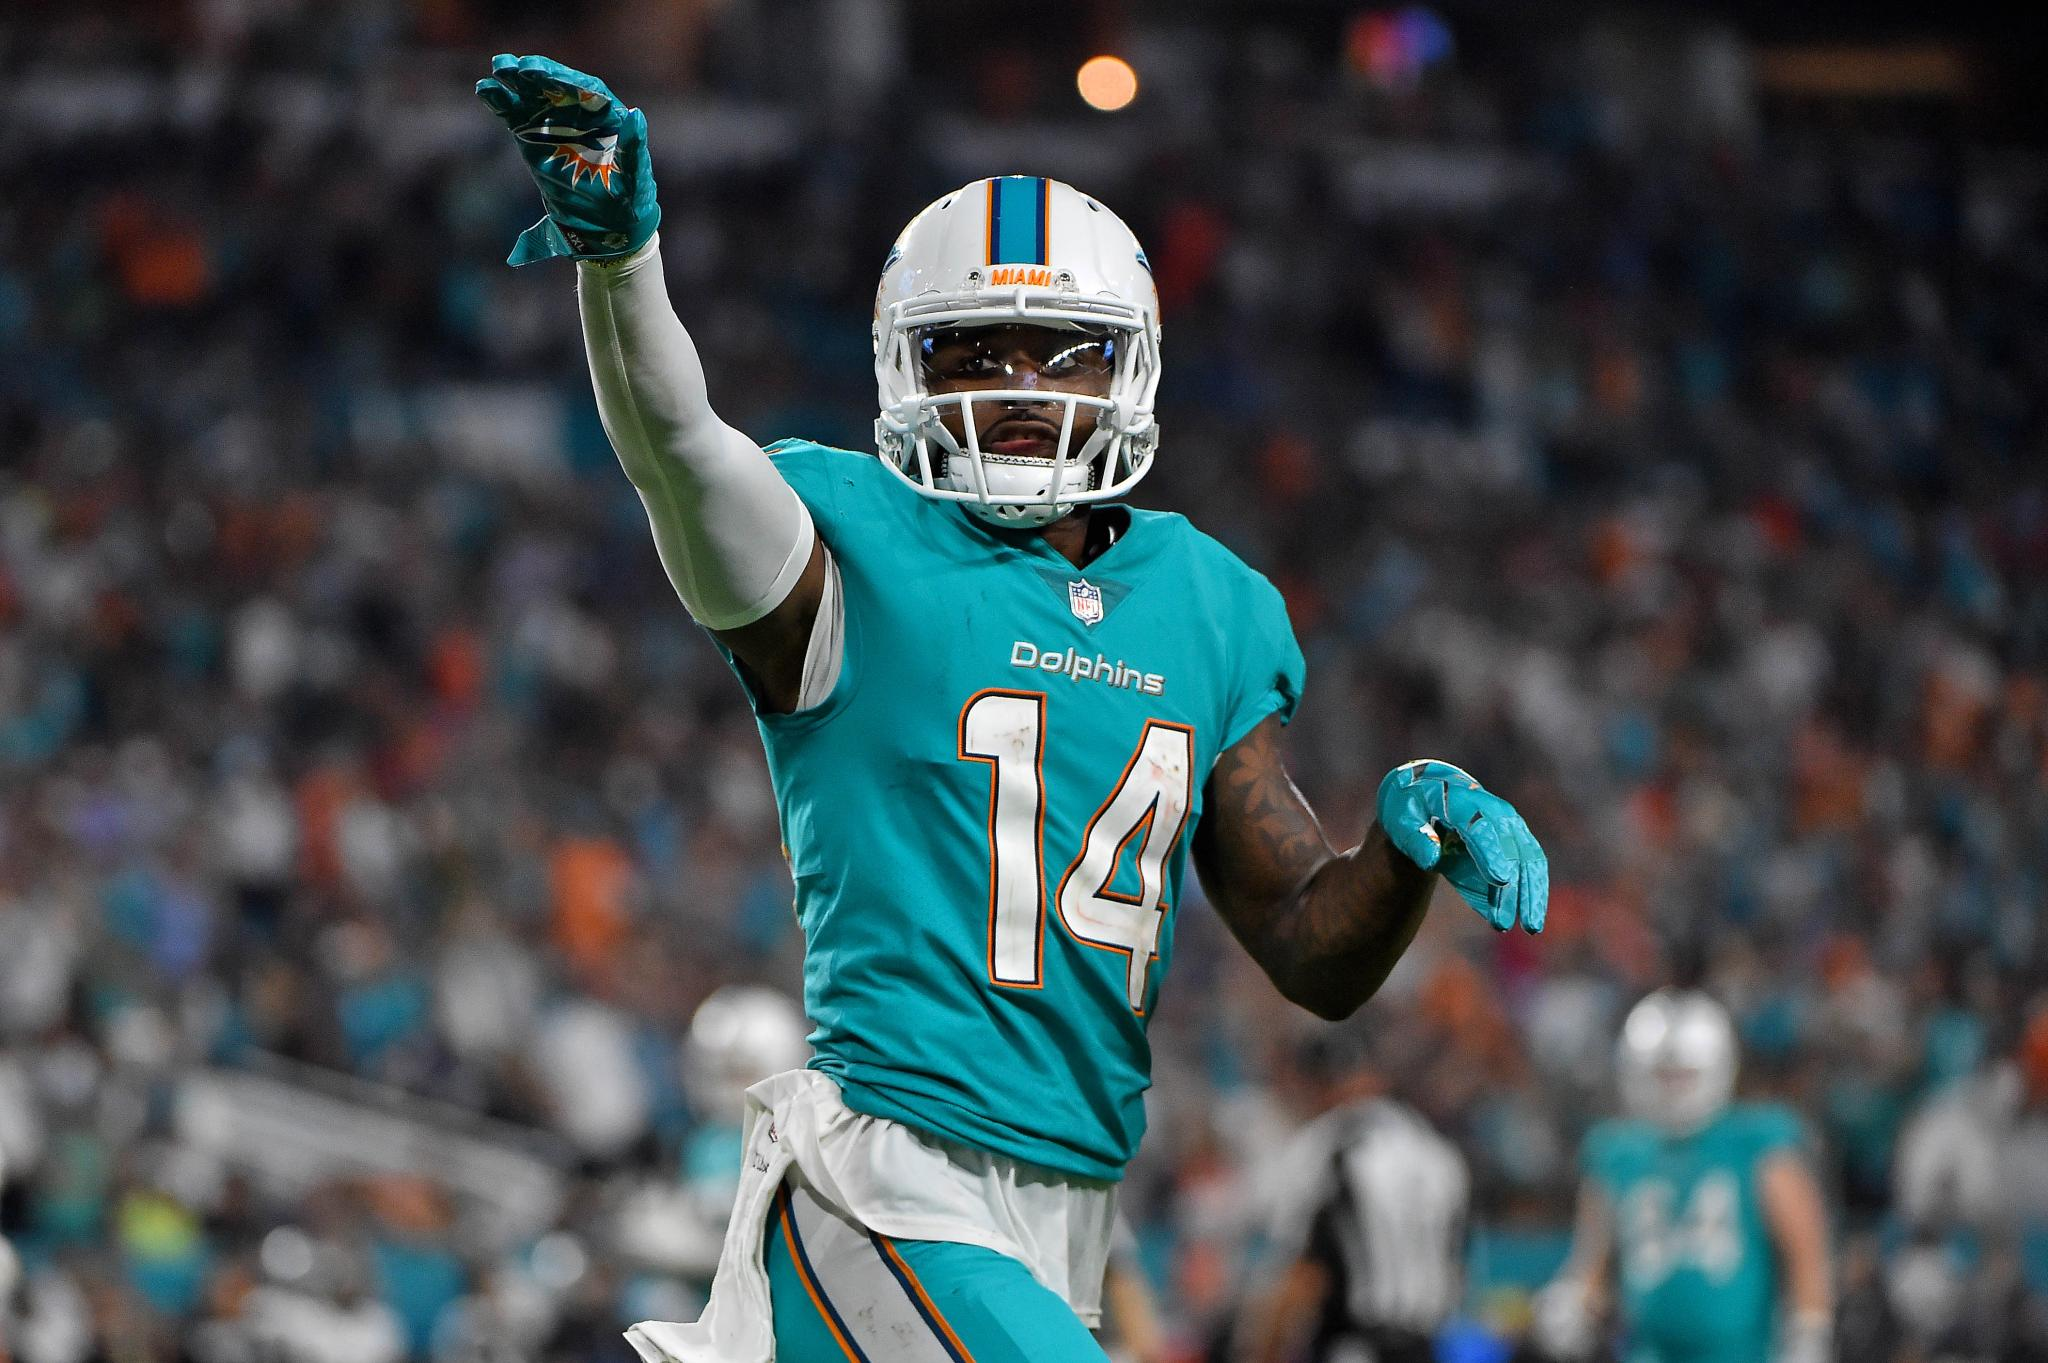 Miami WR Jarvis Landry clarifies guaranteeing 2 wins over Patriots